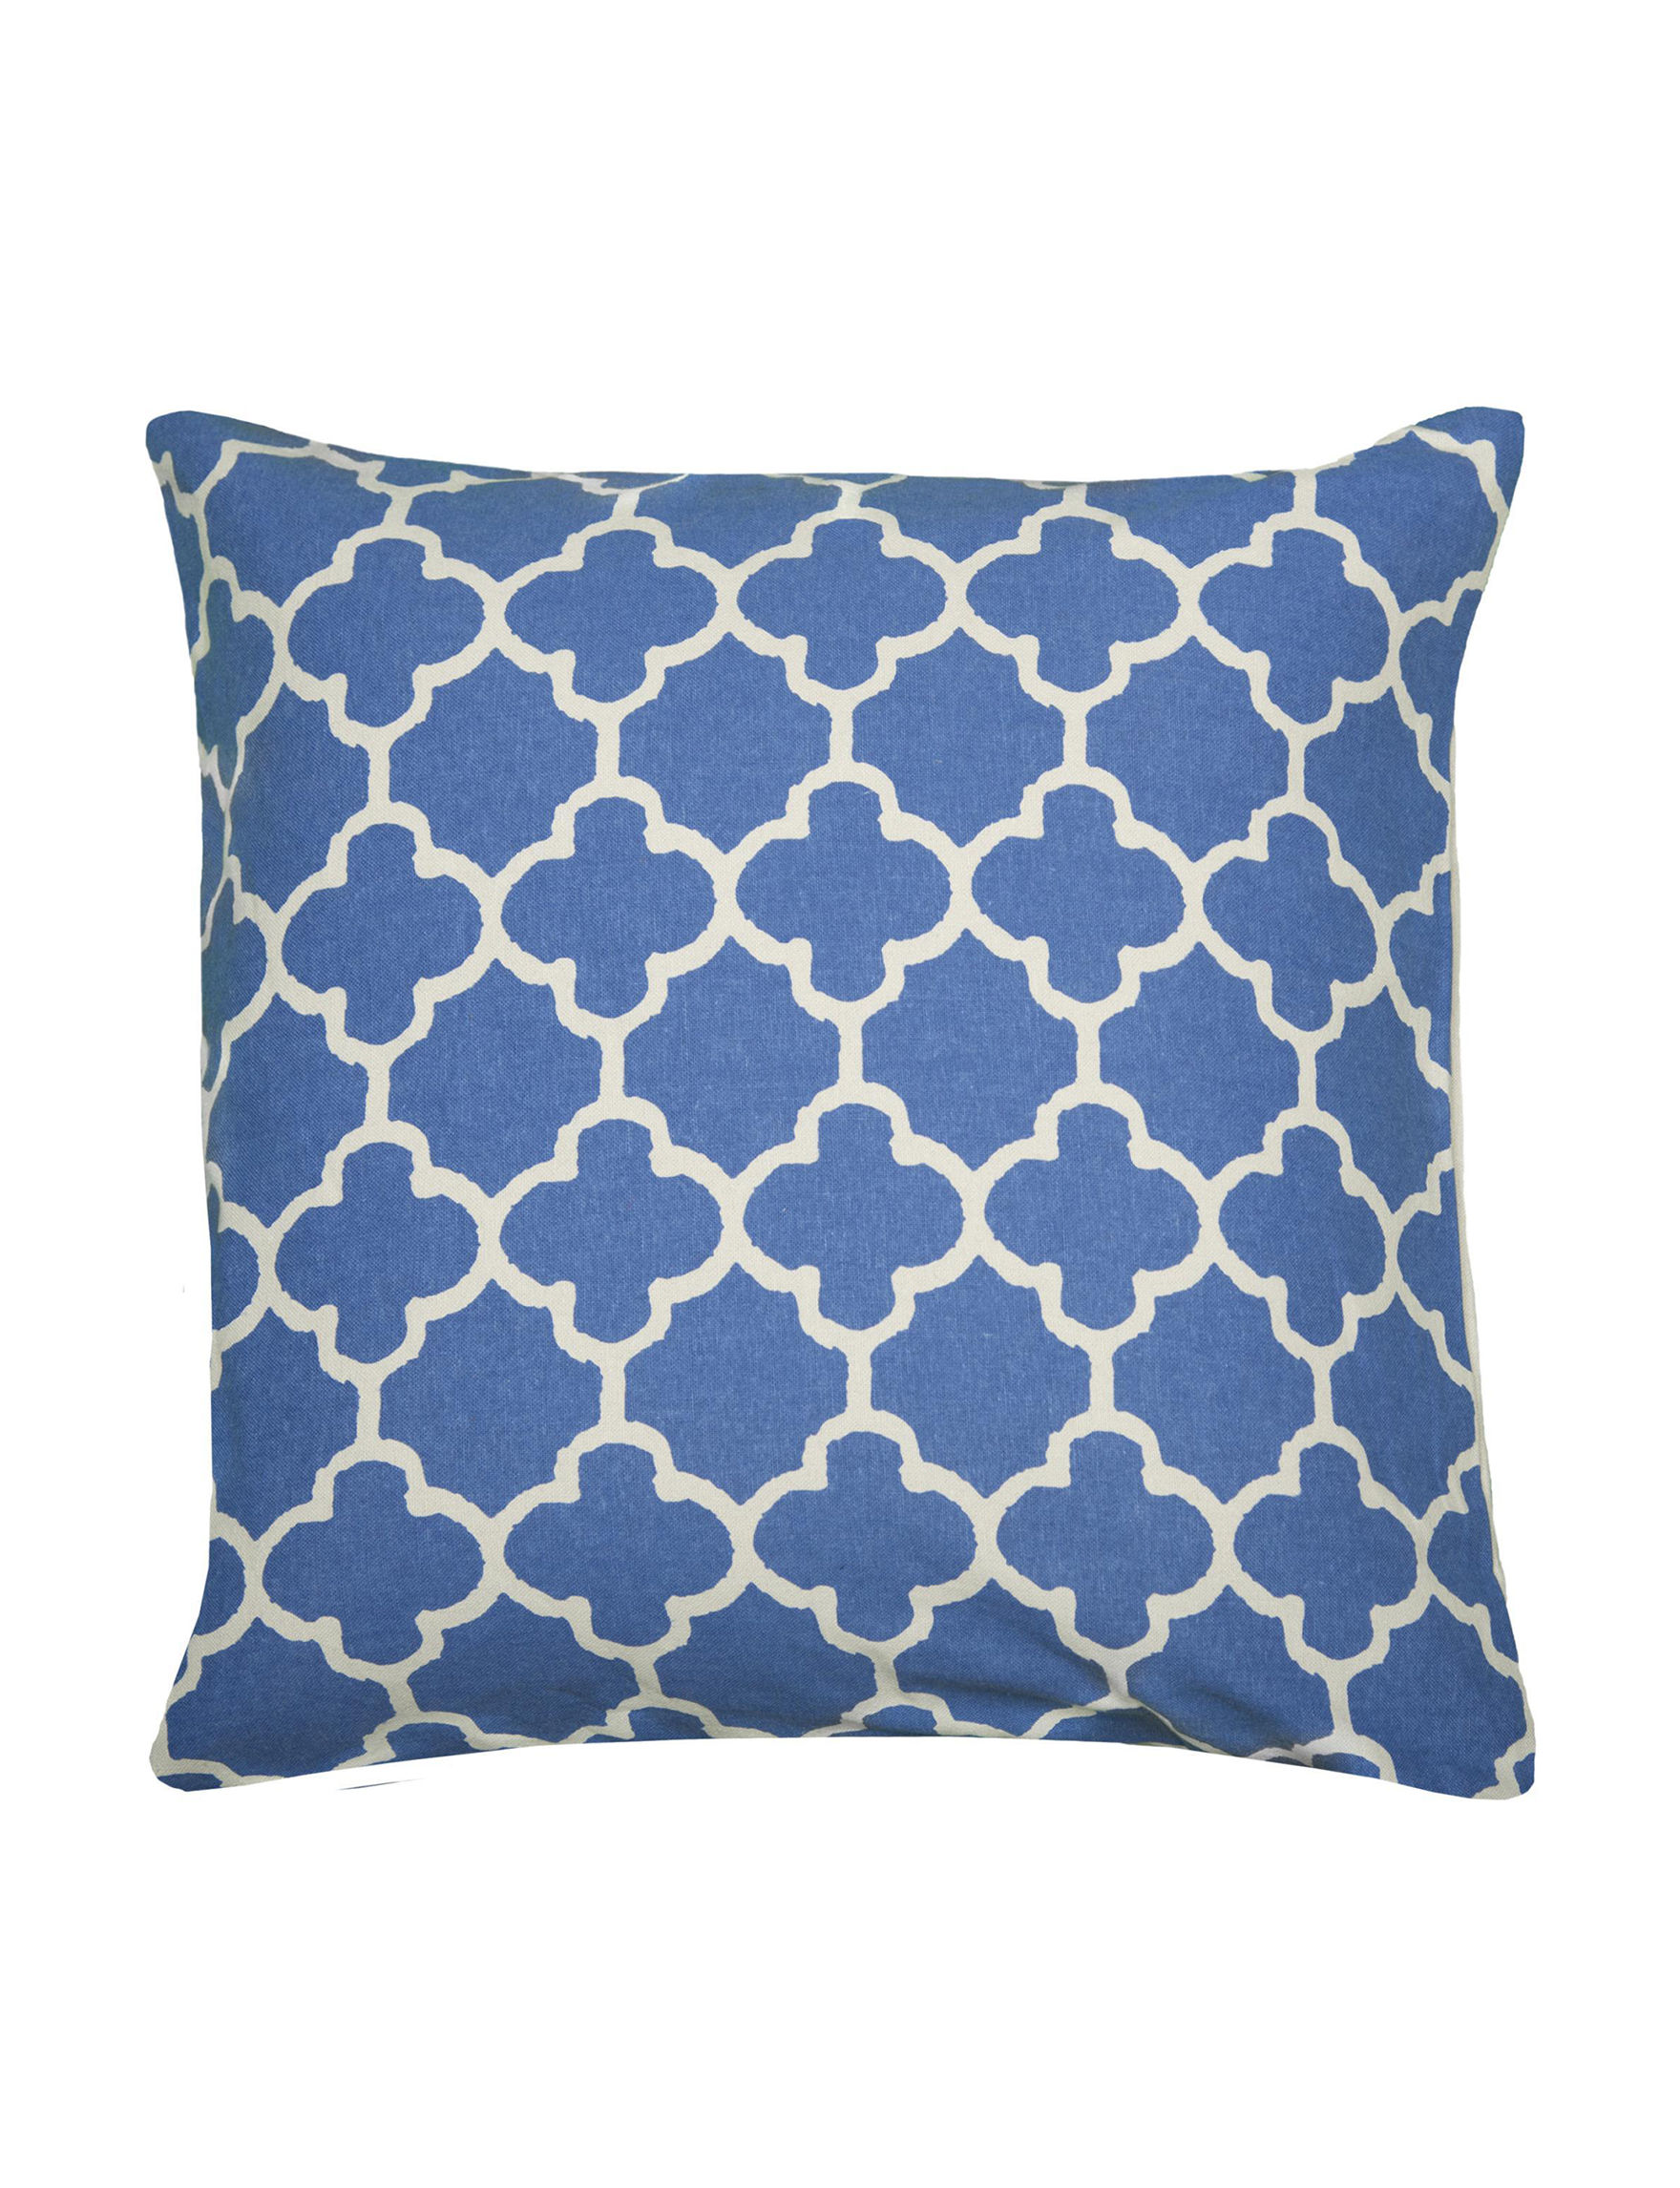 Rizzy Home Beige / Blue Decorative Pillows